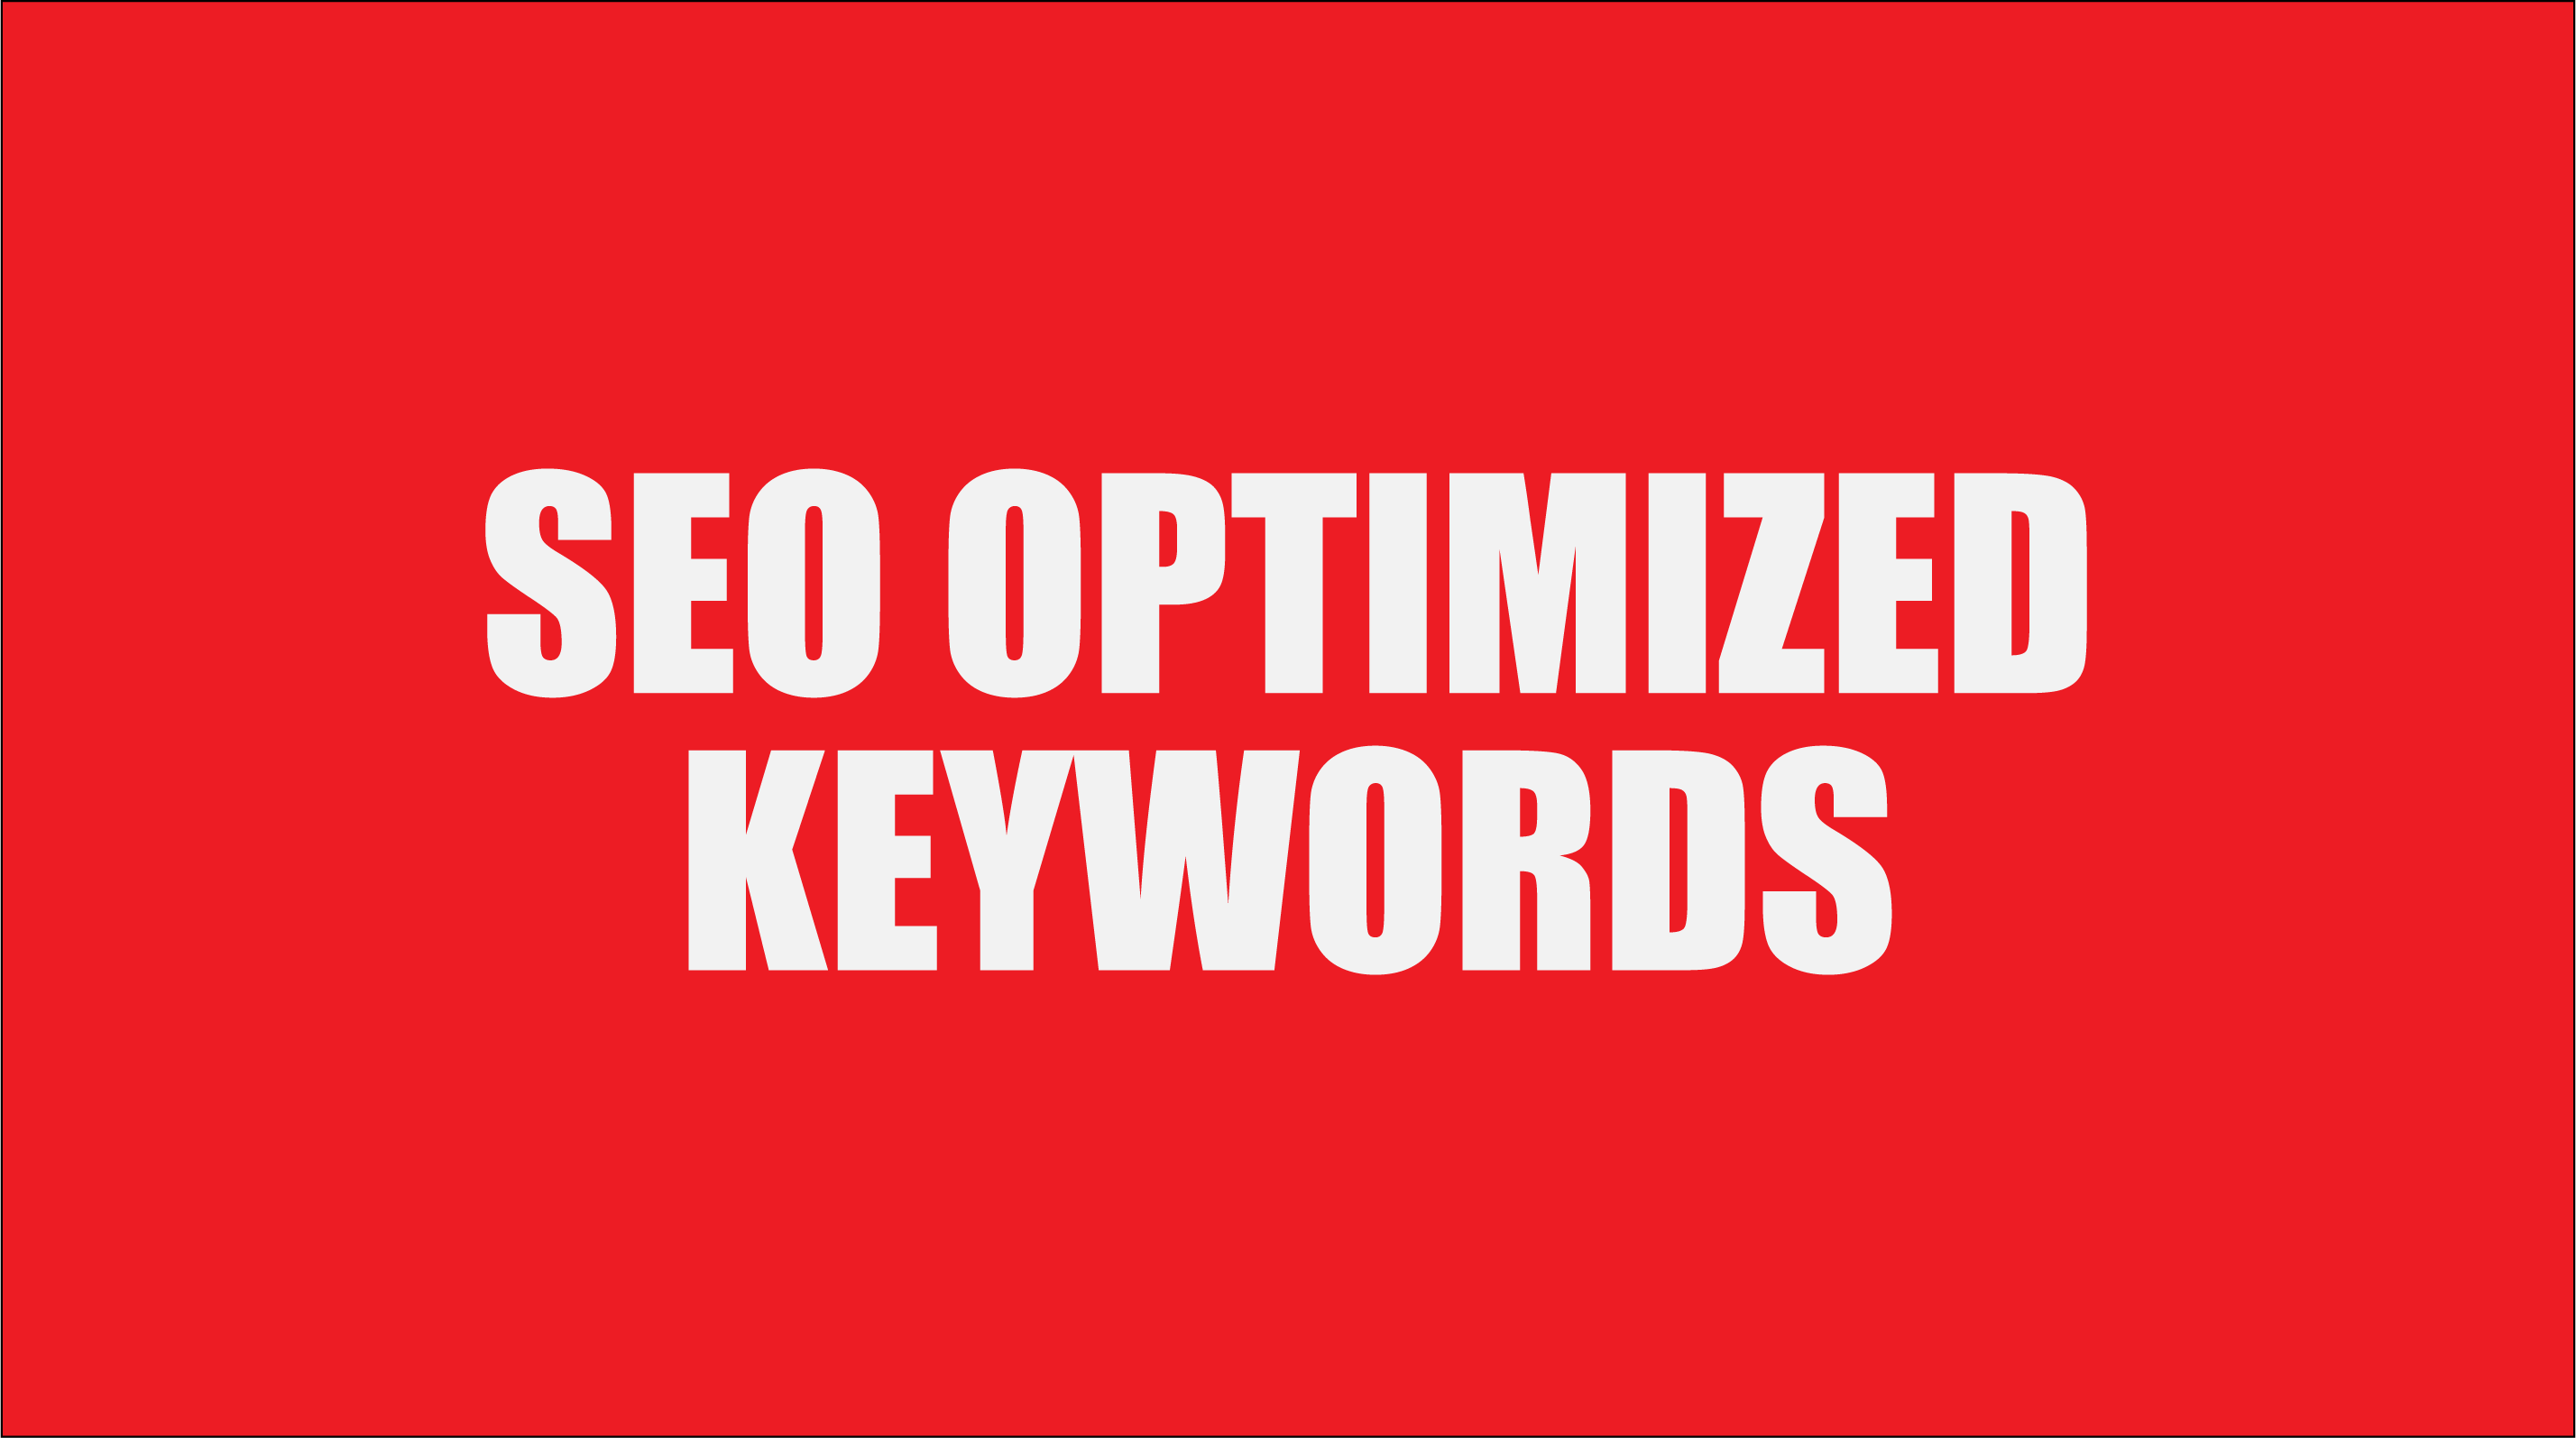 Get google page-1 optimized long tail targeted keywords for adwords/campaigns